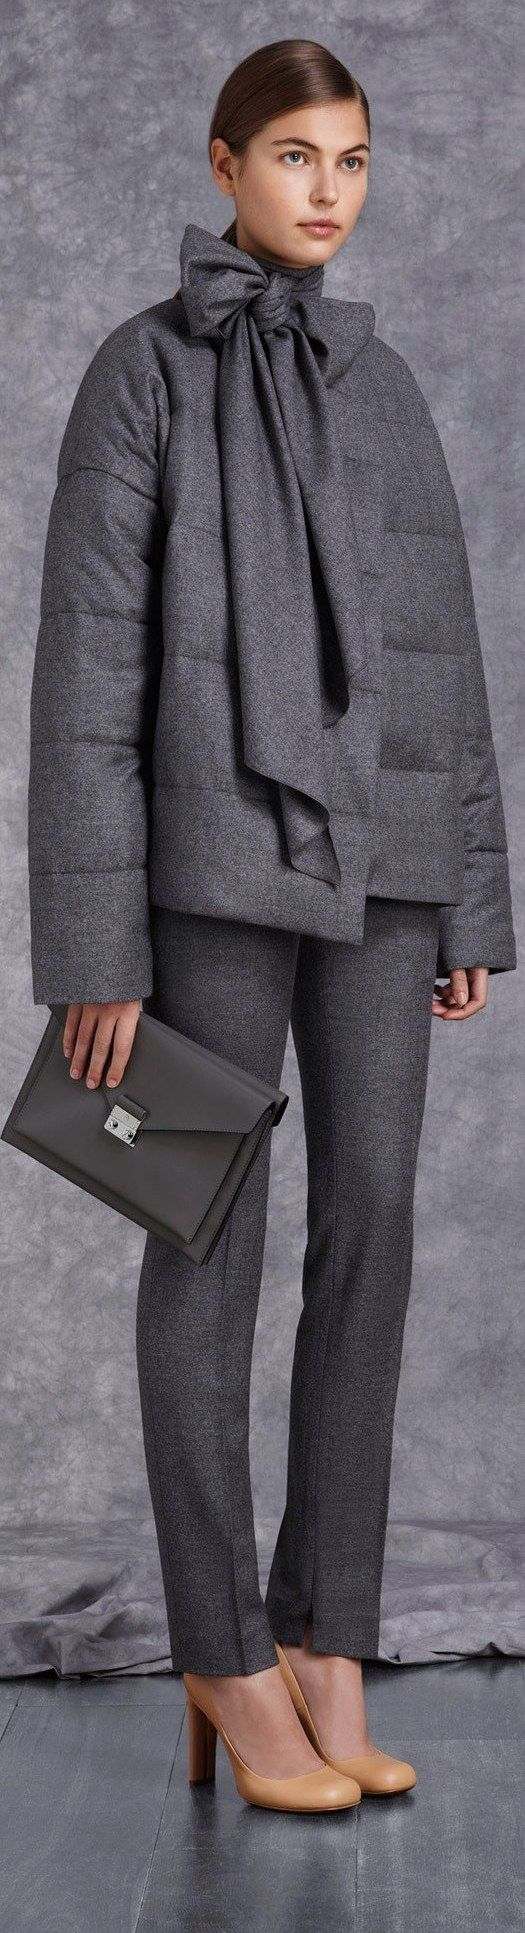 Mulberry - Pre Fall                                                                                                                                                                                 More